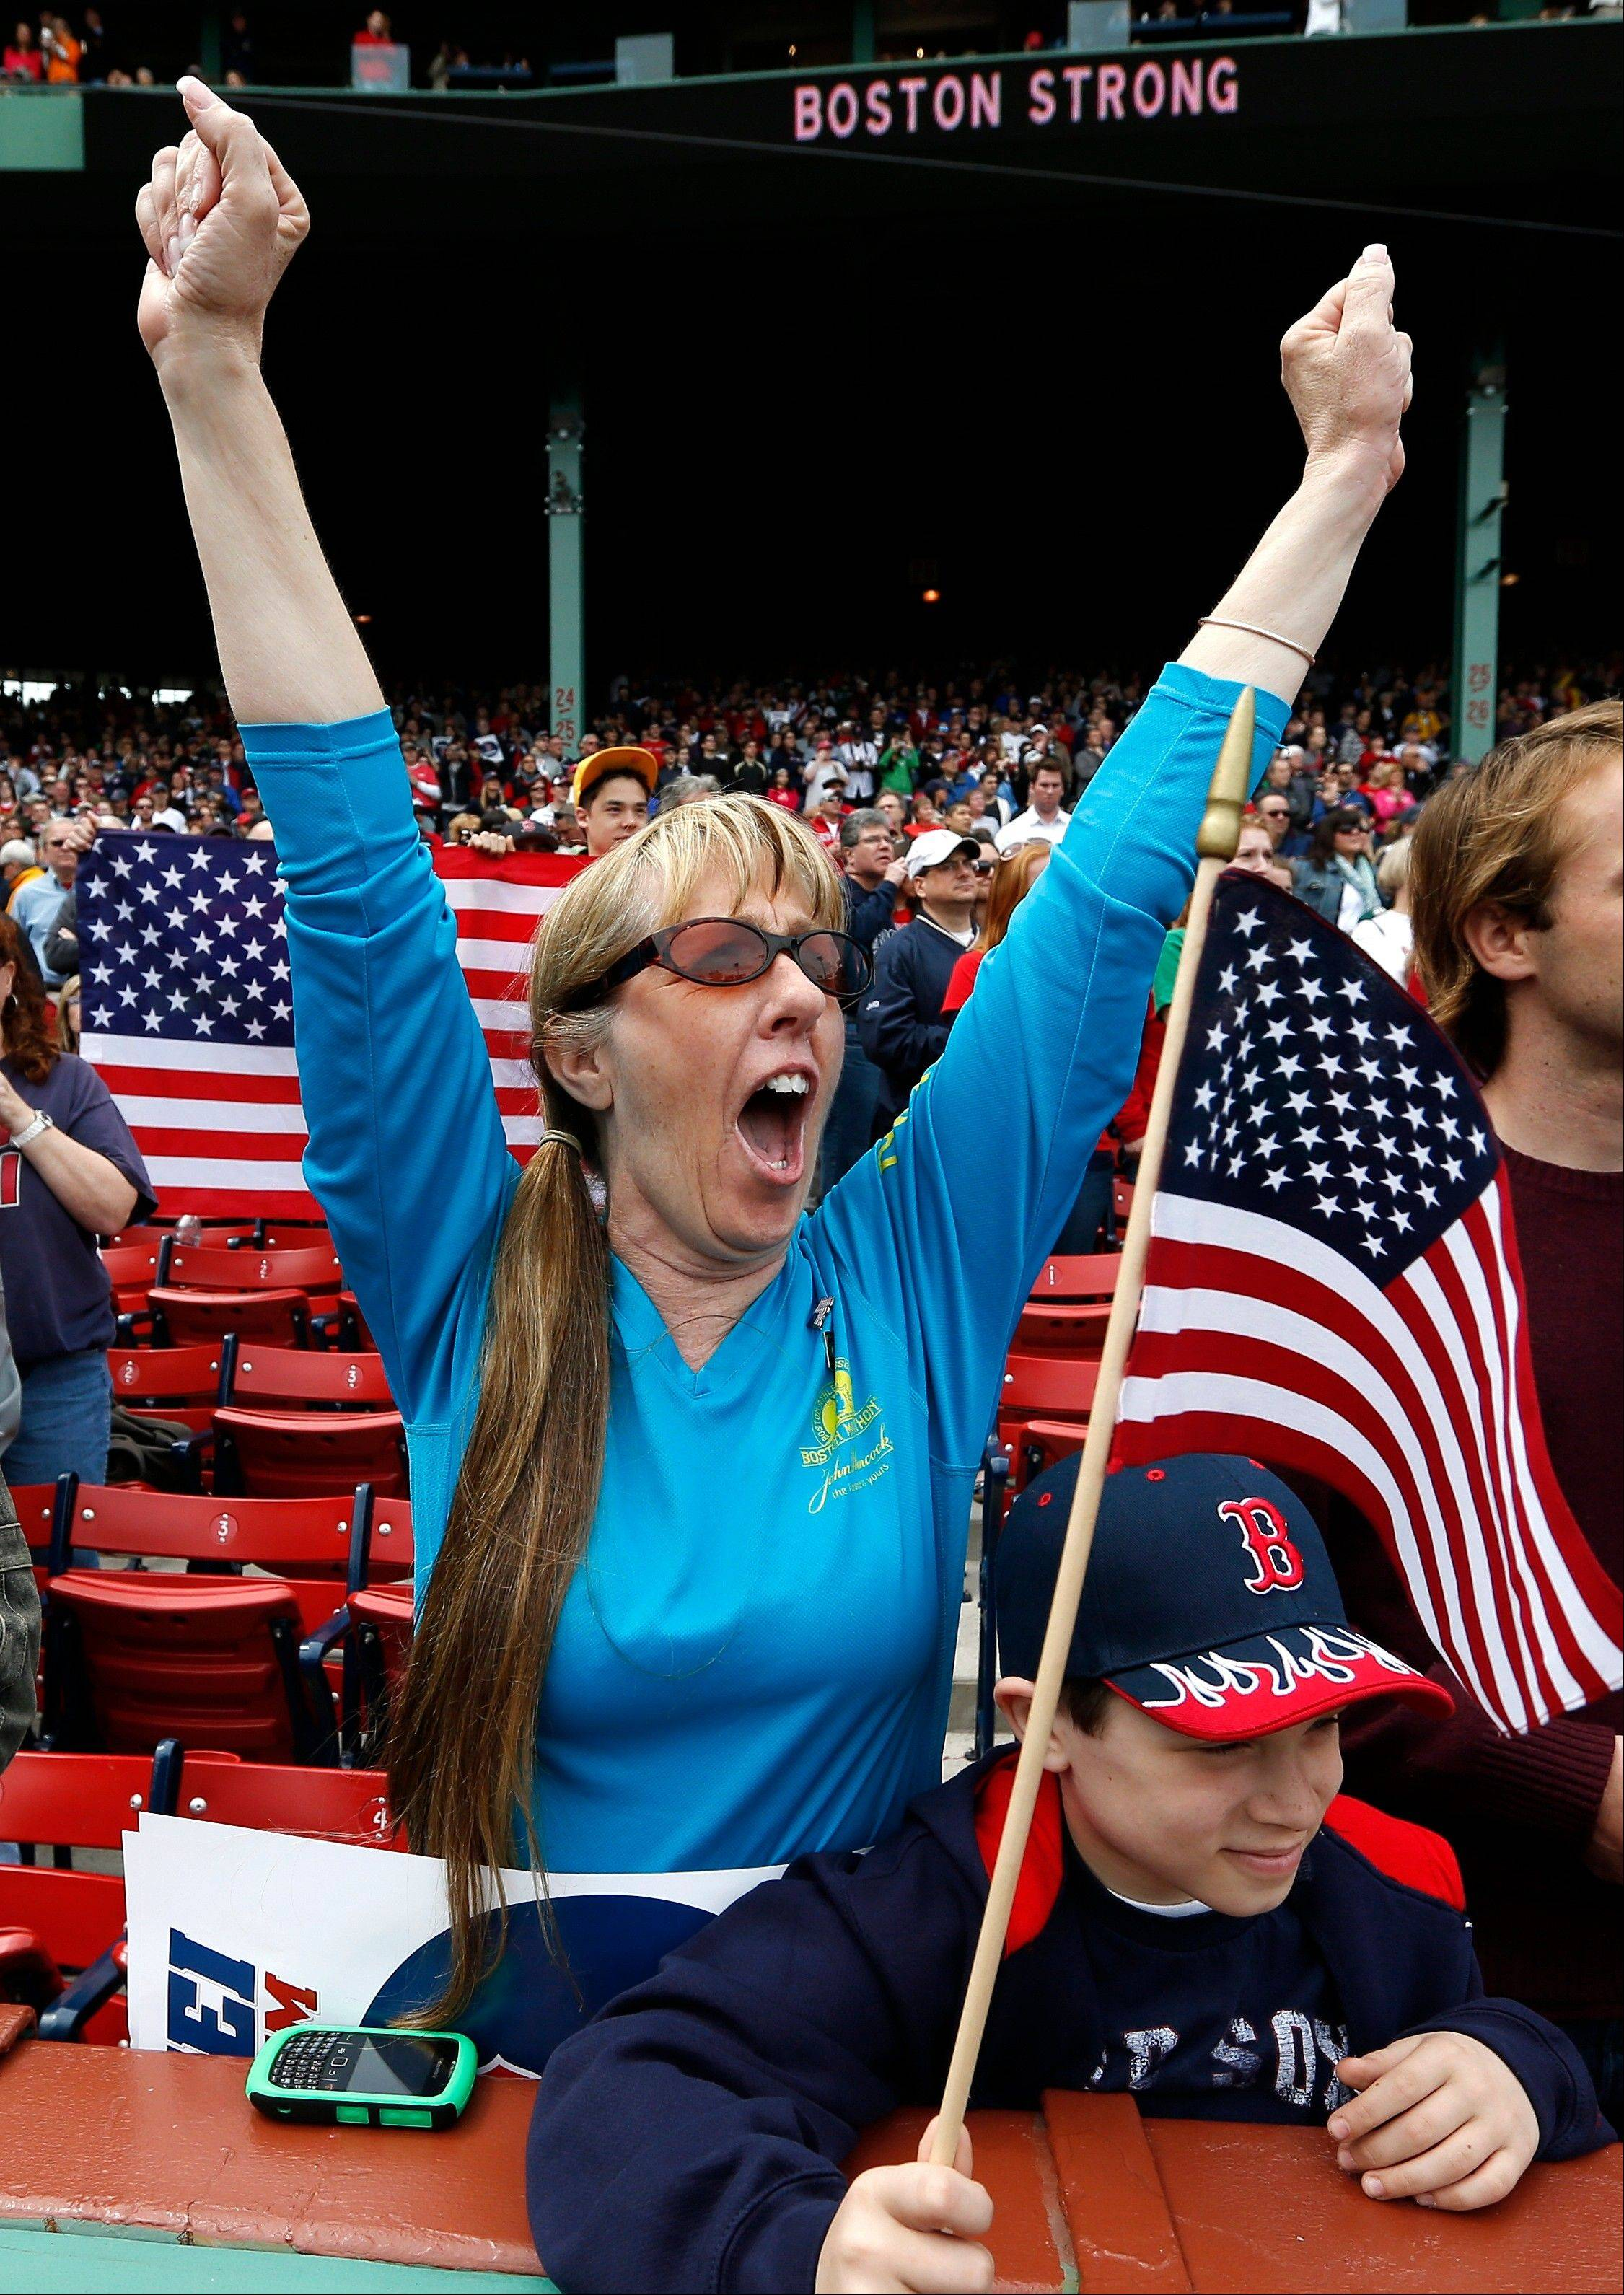 A fan cheers during a tribute to first responders to the Boston Marathon bombing before a baseball game between the Boston Red Sox and the Kansas City Royals in Boston, Saturday, April 20, 2013.